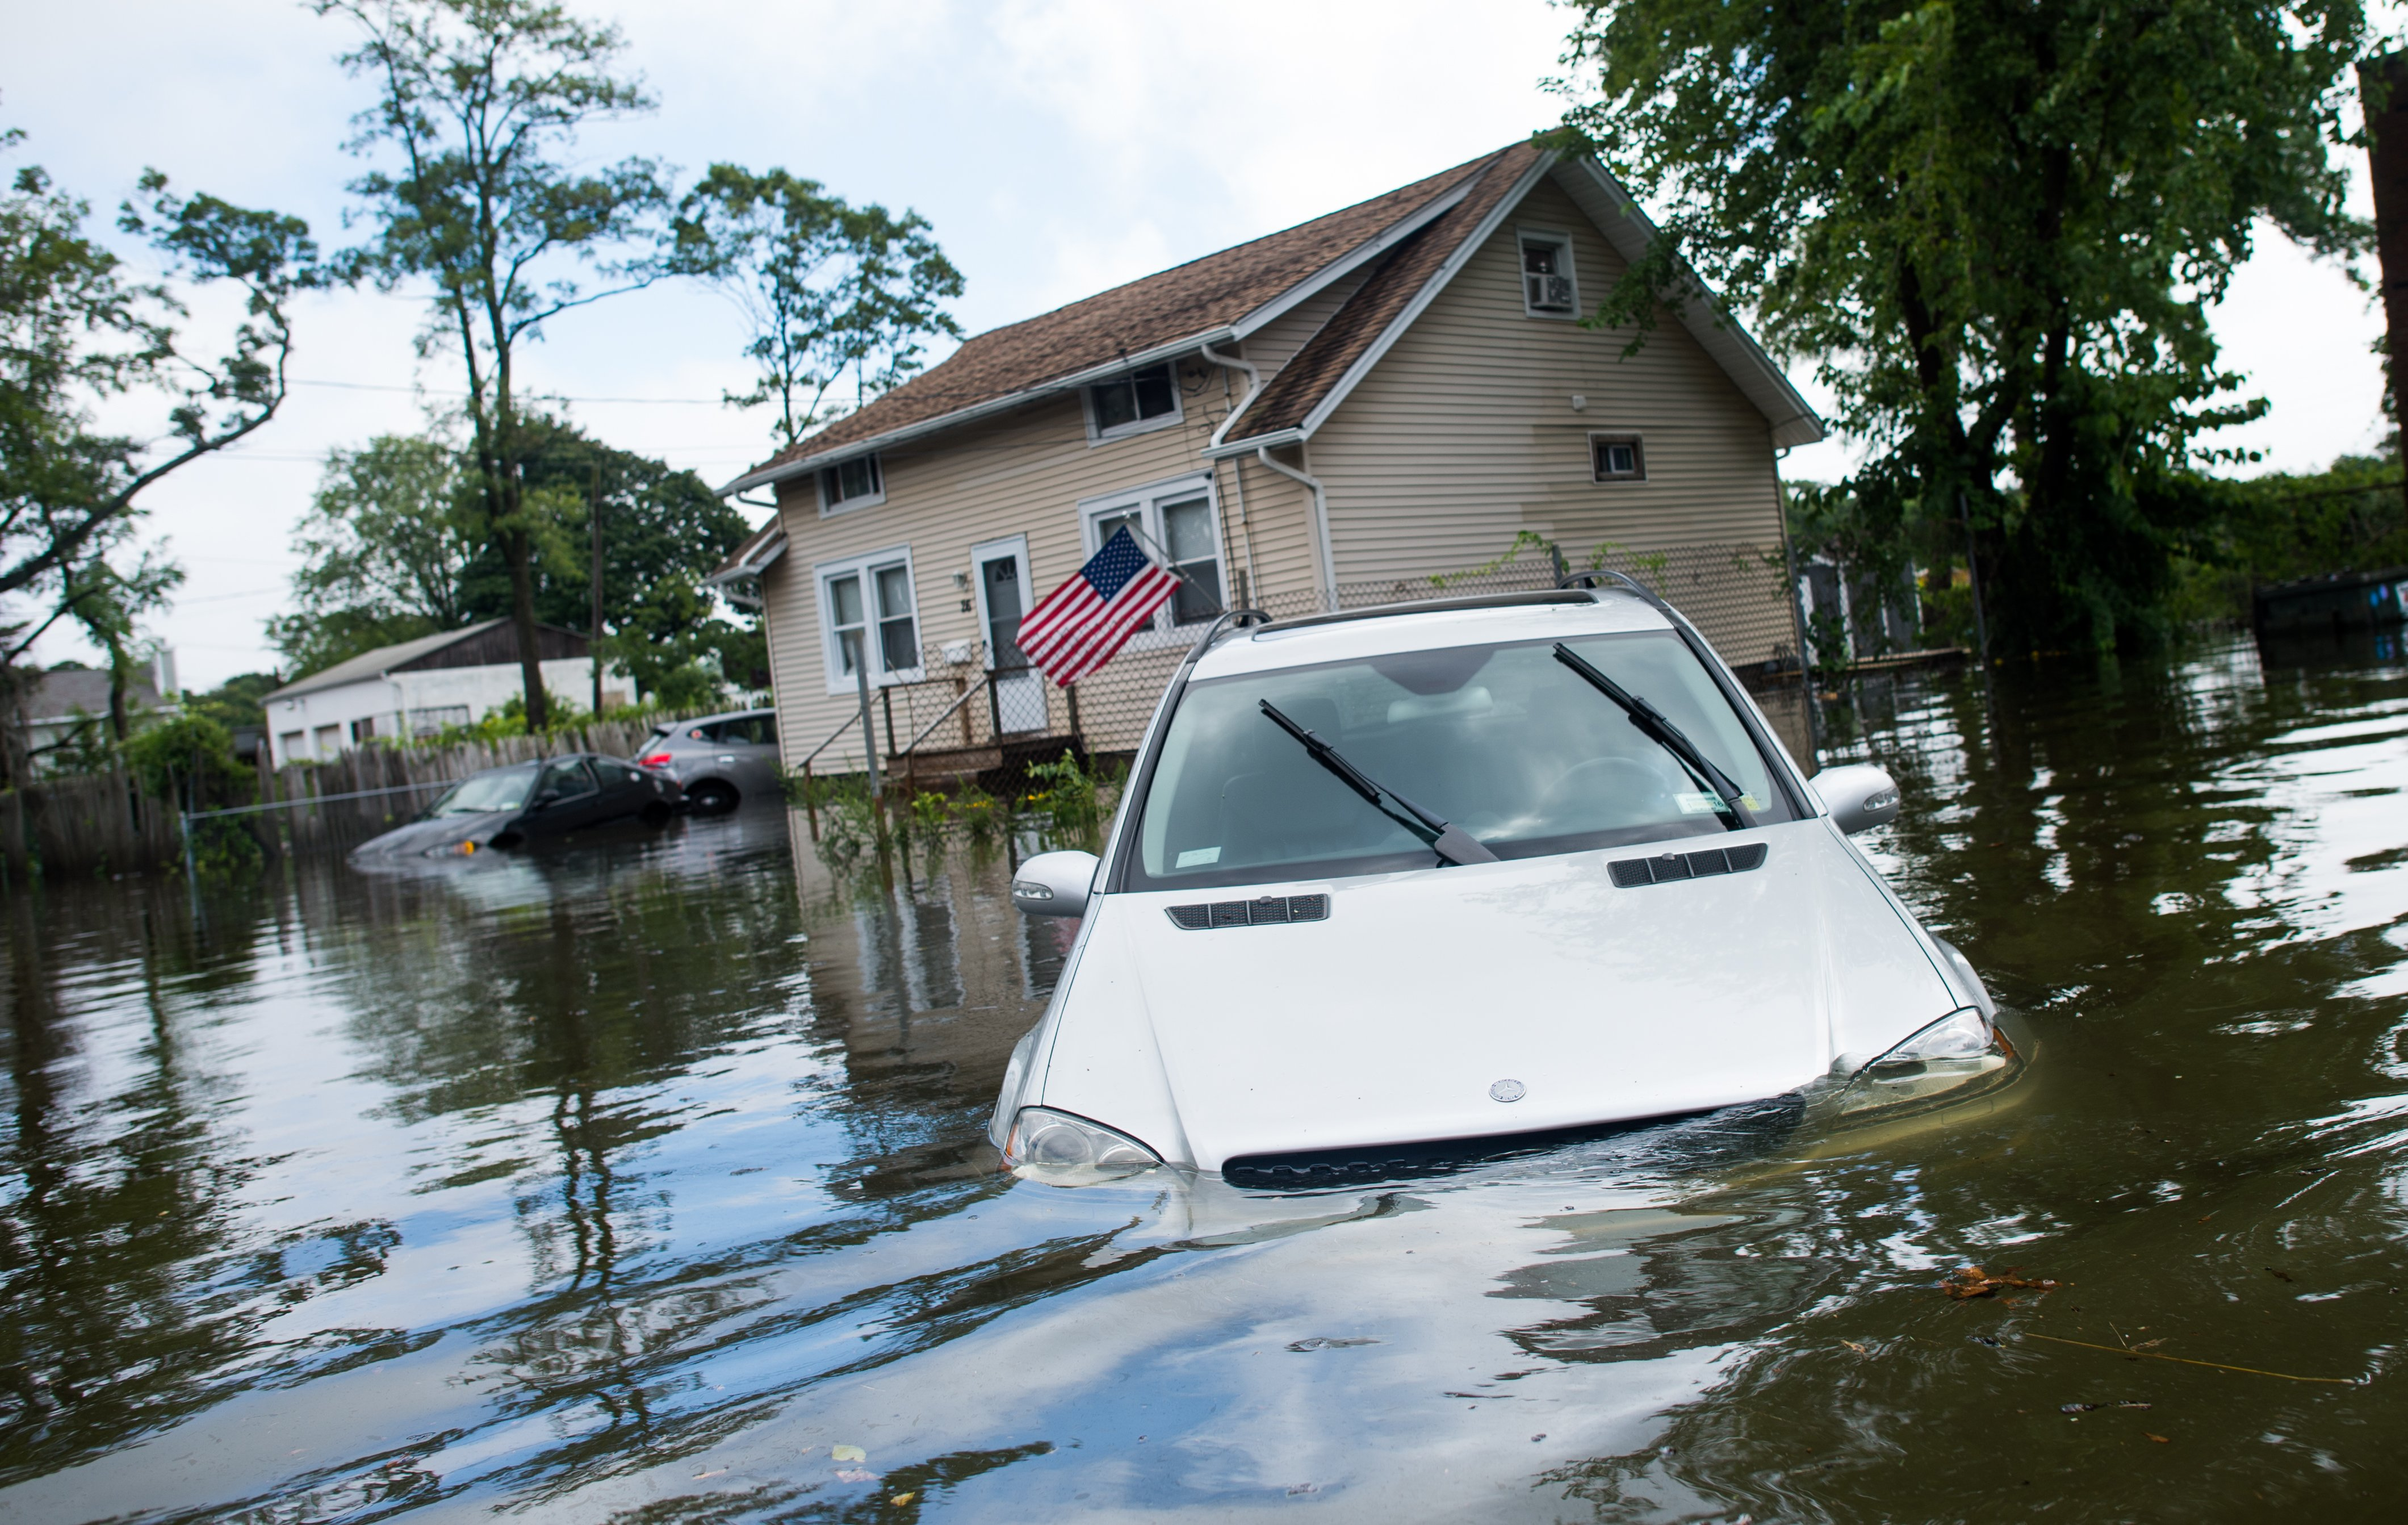 A car is abandoned on a flooded Reddington St. following heavy rains and flash flooding in Bayshore, N.Y. on Aug. 13, 2014.